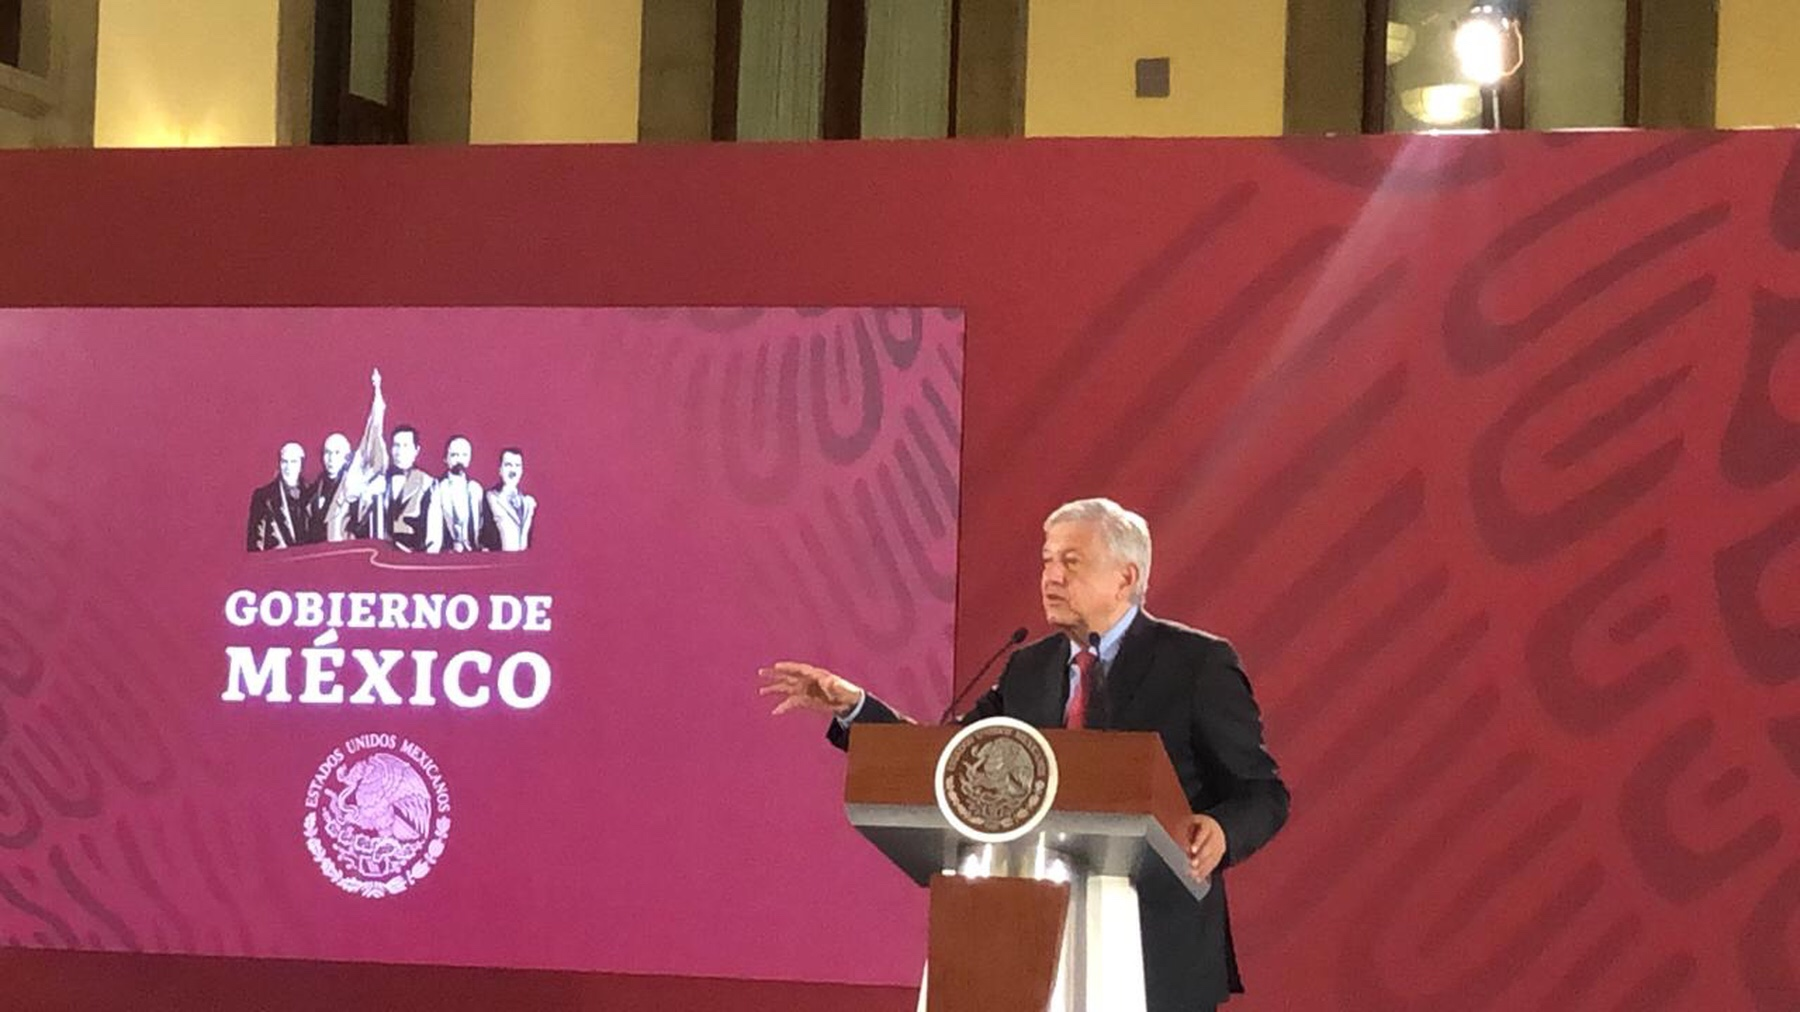 """Hay indeseables metidos"", dijeron a AMLO"